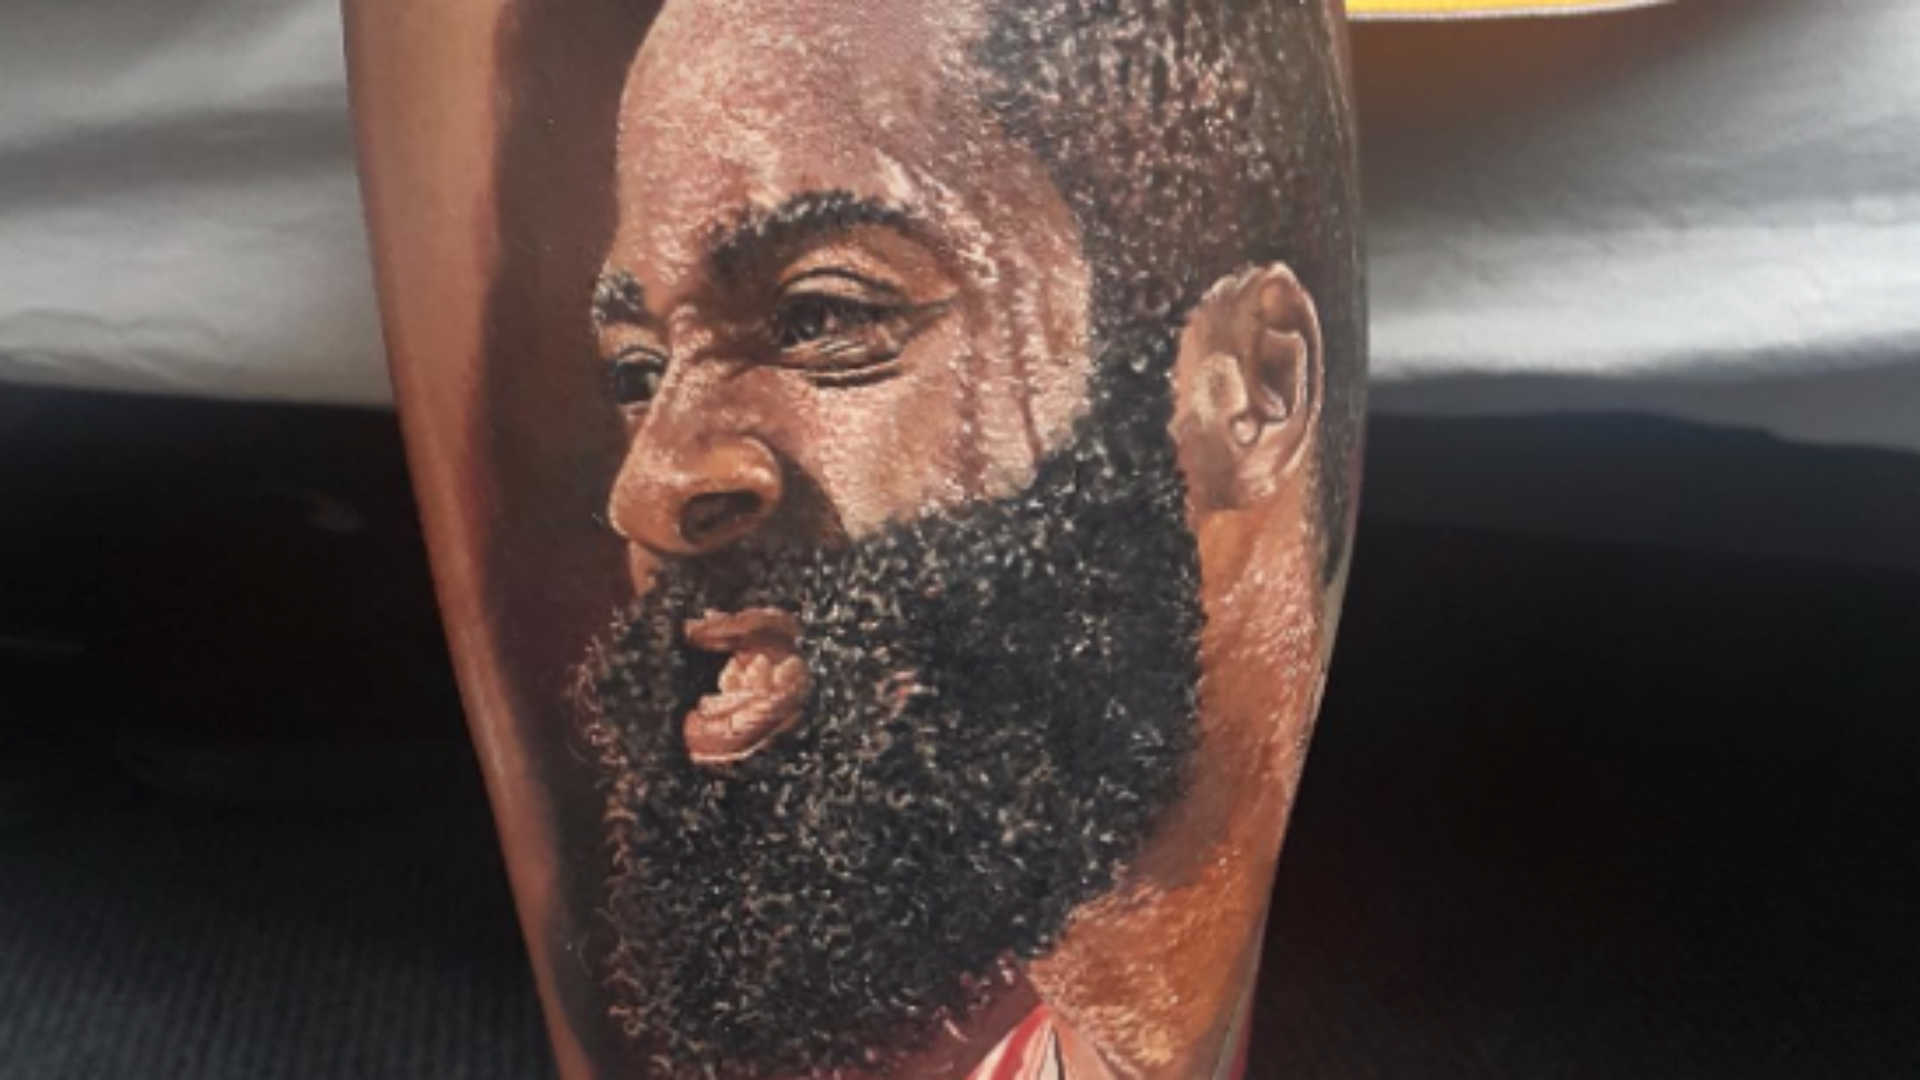 Crazy Kiwi's Harden tattoo